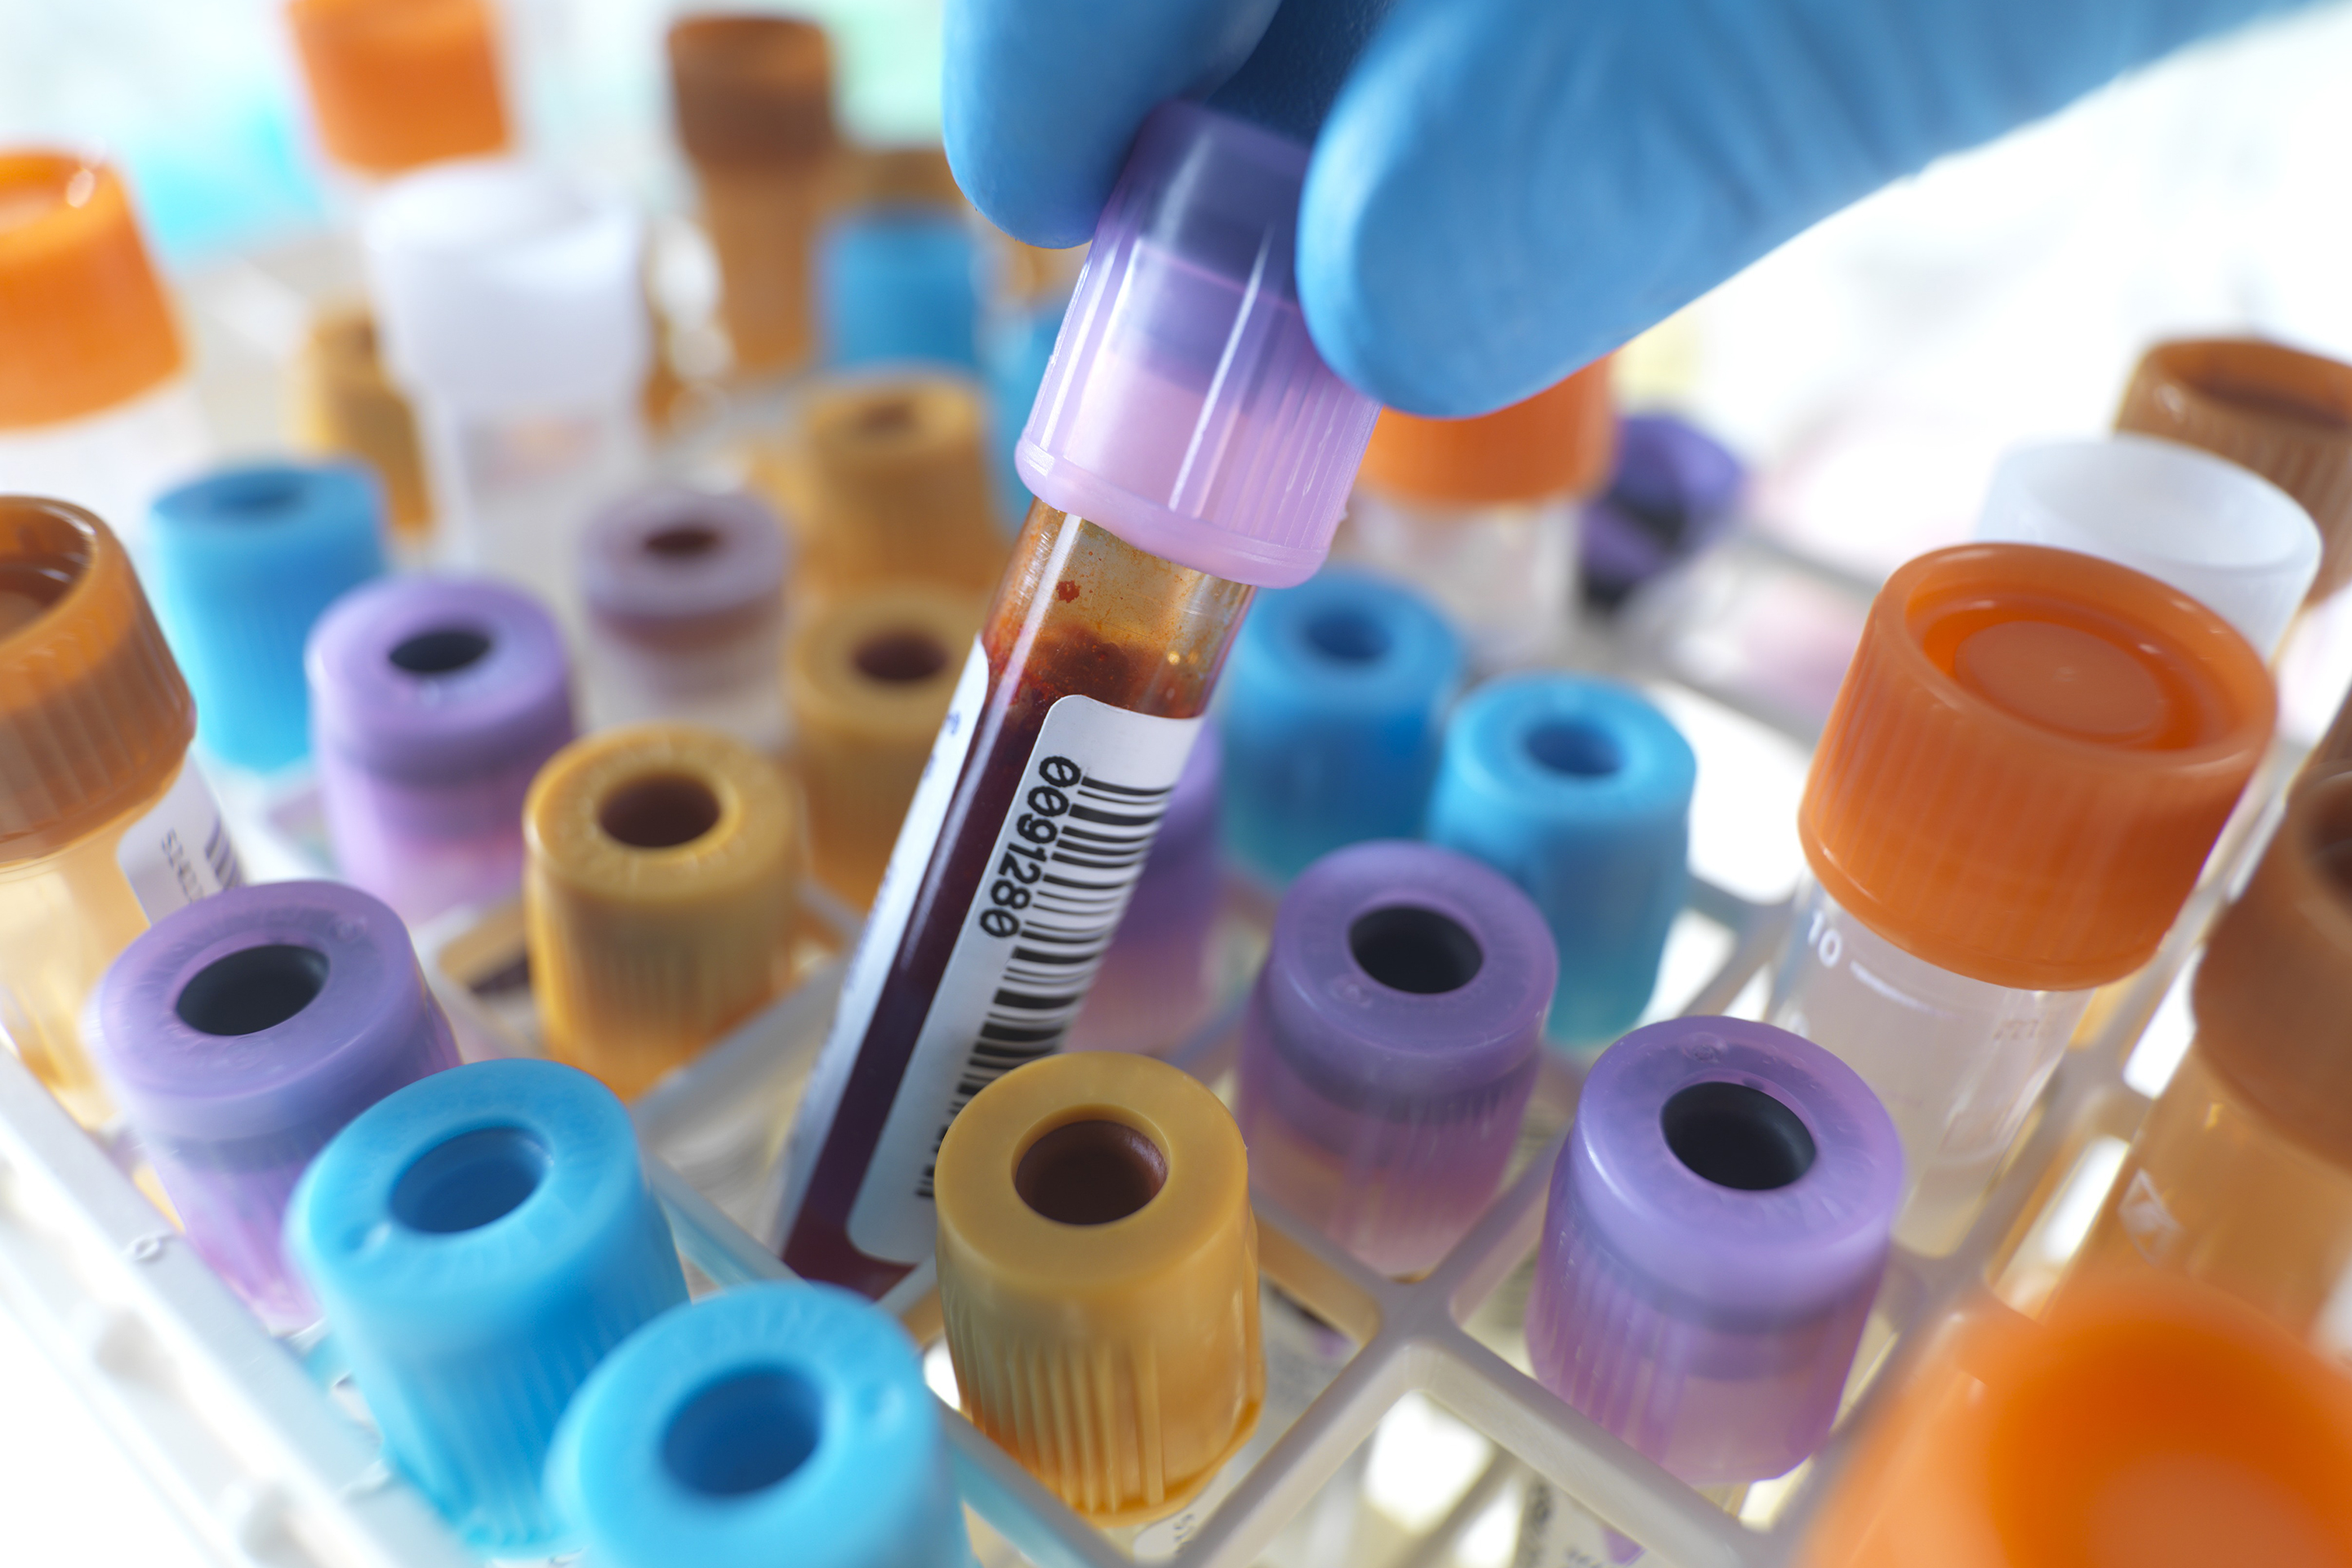 quest diagnostics data breach blood test